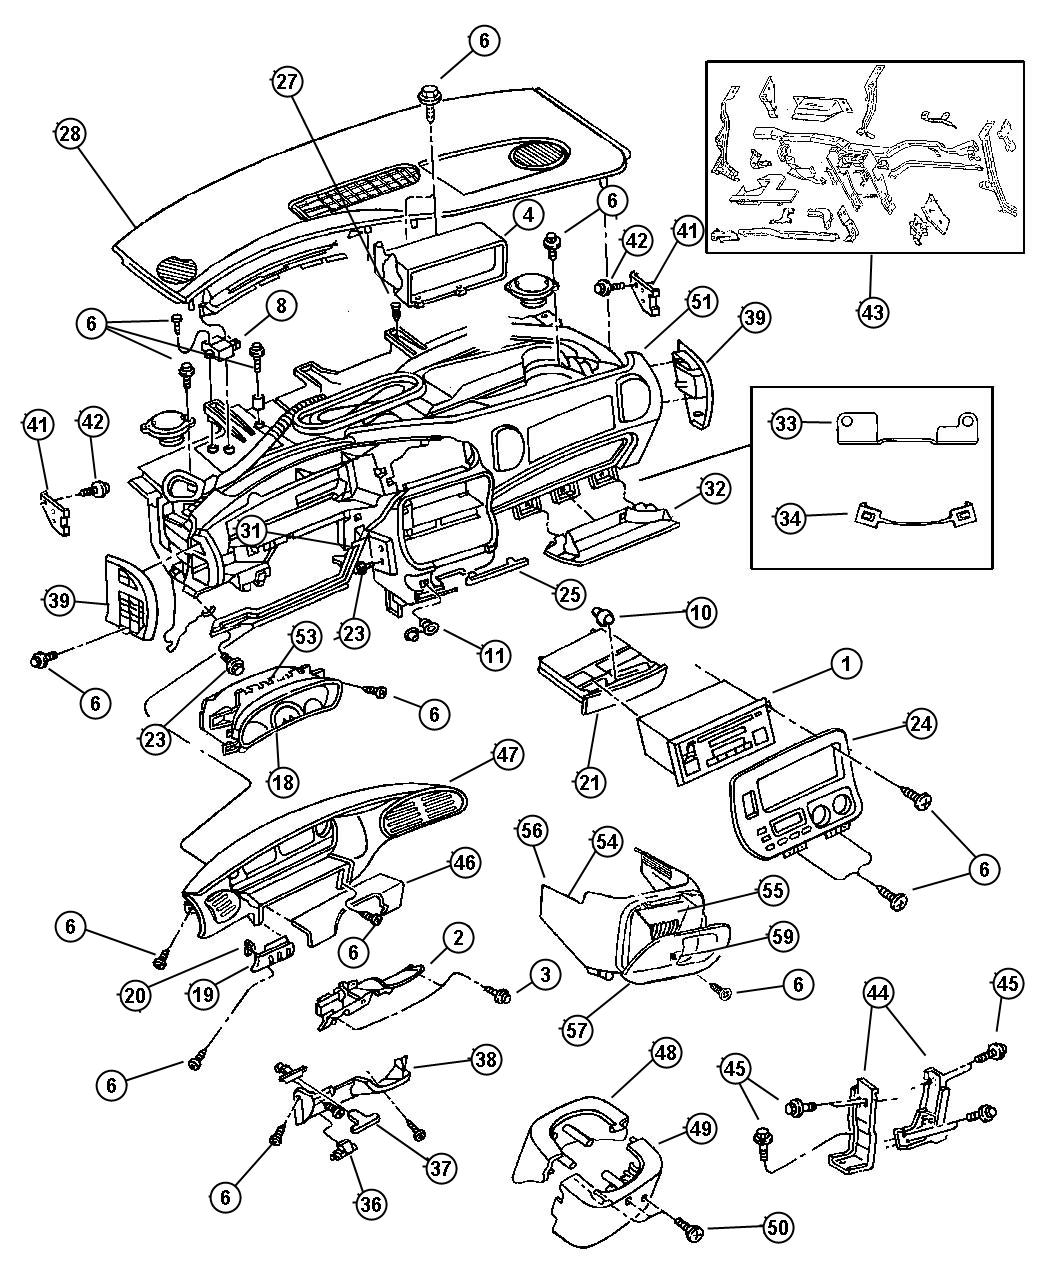 Mopar Wiring Diagrams Instrument Panel Library 2008 Jaguar Cooling Diagram Chrysler Voyager 1997 Circuit Schematic Throttle Body